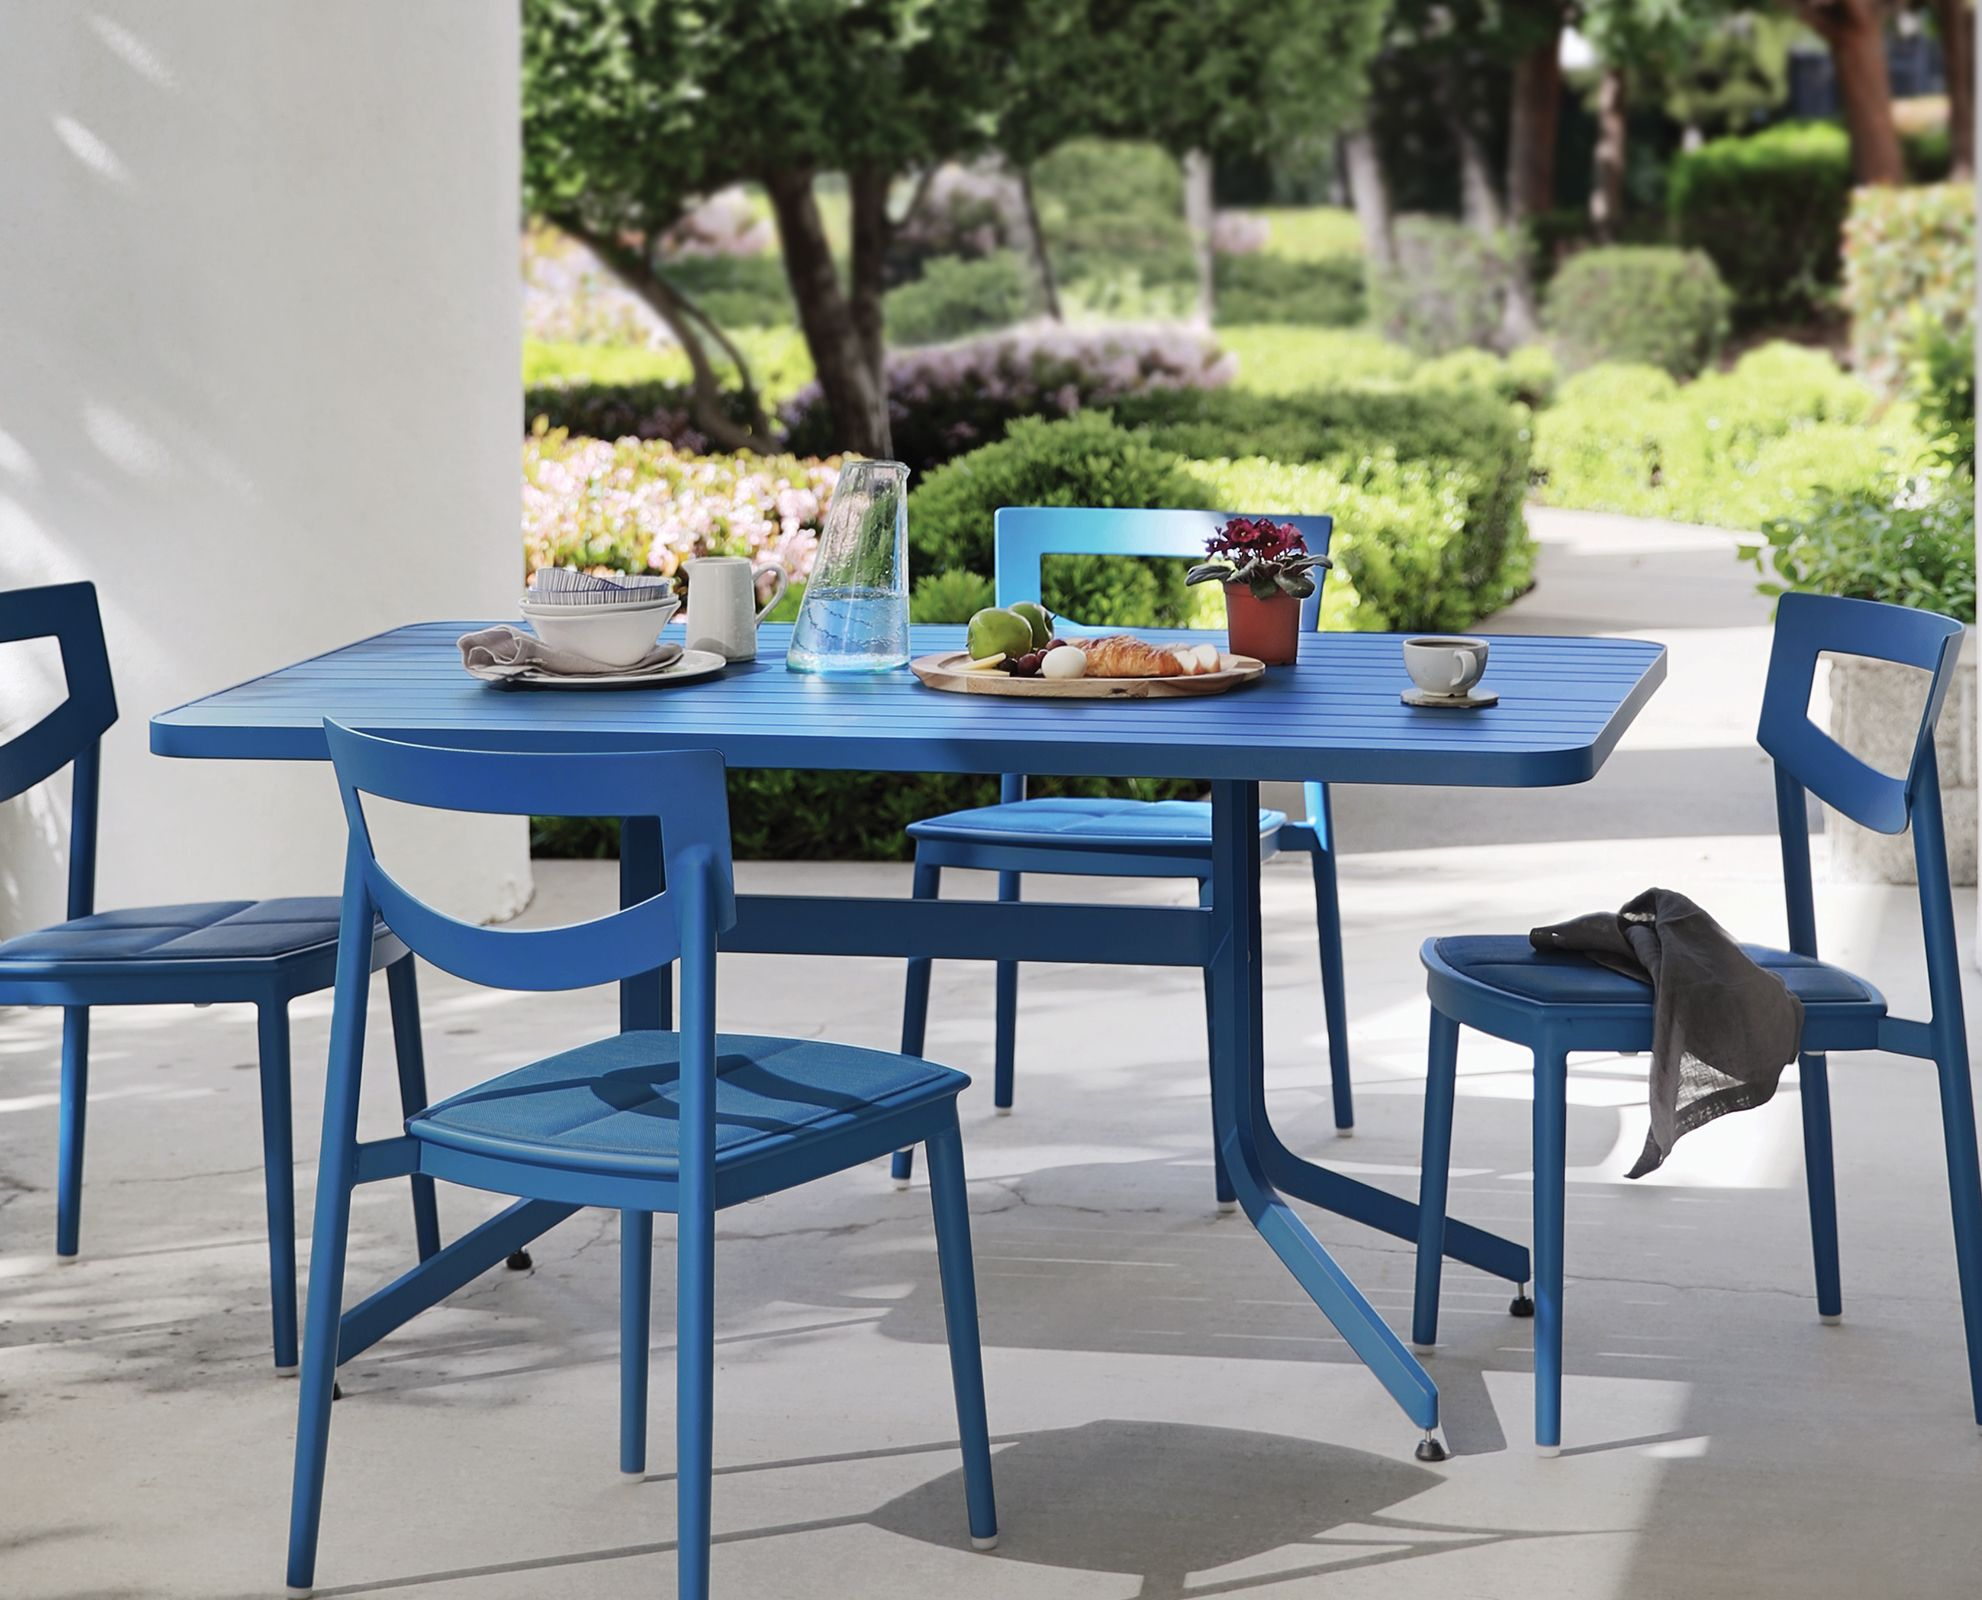 Synne Rectangular Dining Table By Scandinavian Designs The Blends Clic Picnic Design With Modern Day Style